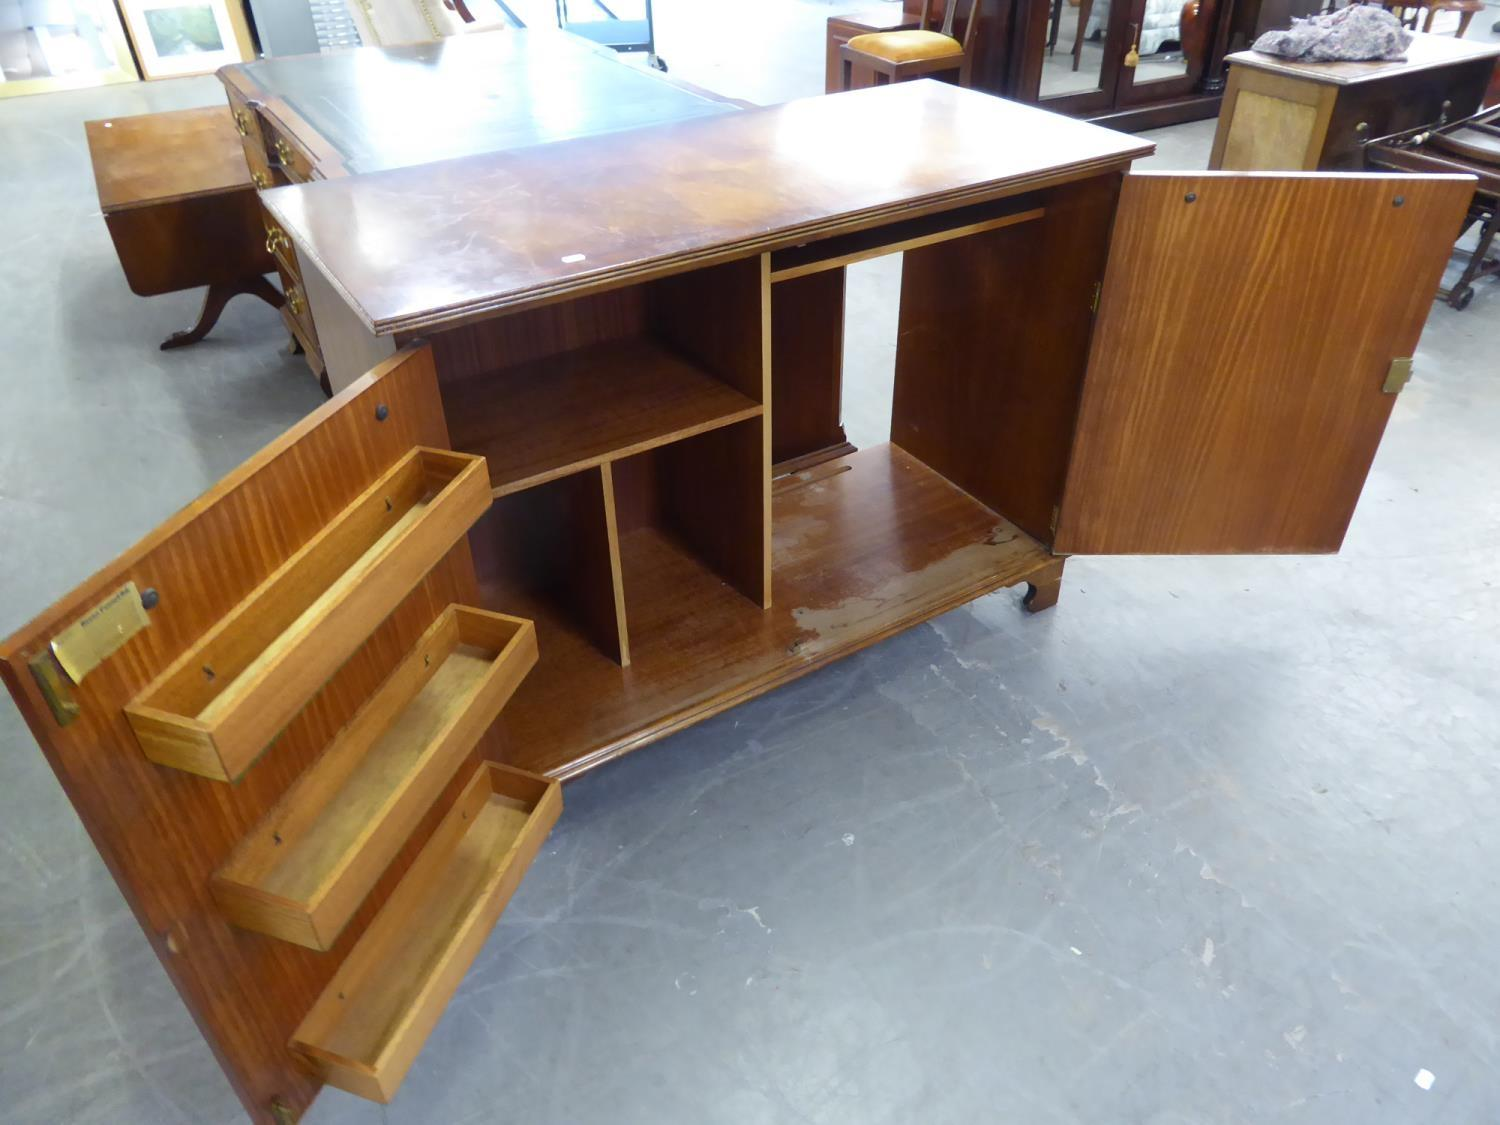 *BEVAN FUNNELL REGENCY STYLE MAHOGANY SIDE CABINET, THE TWO DOORS EACH FACED AS A FALSE DRAWER - Image 2 of 2